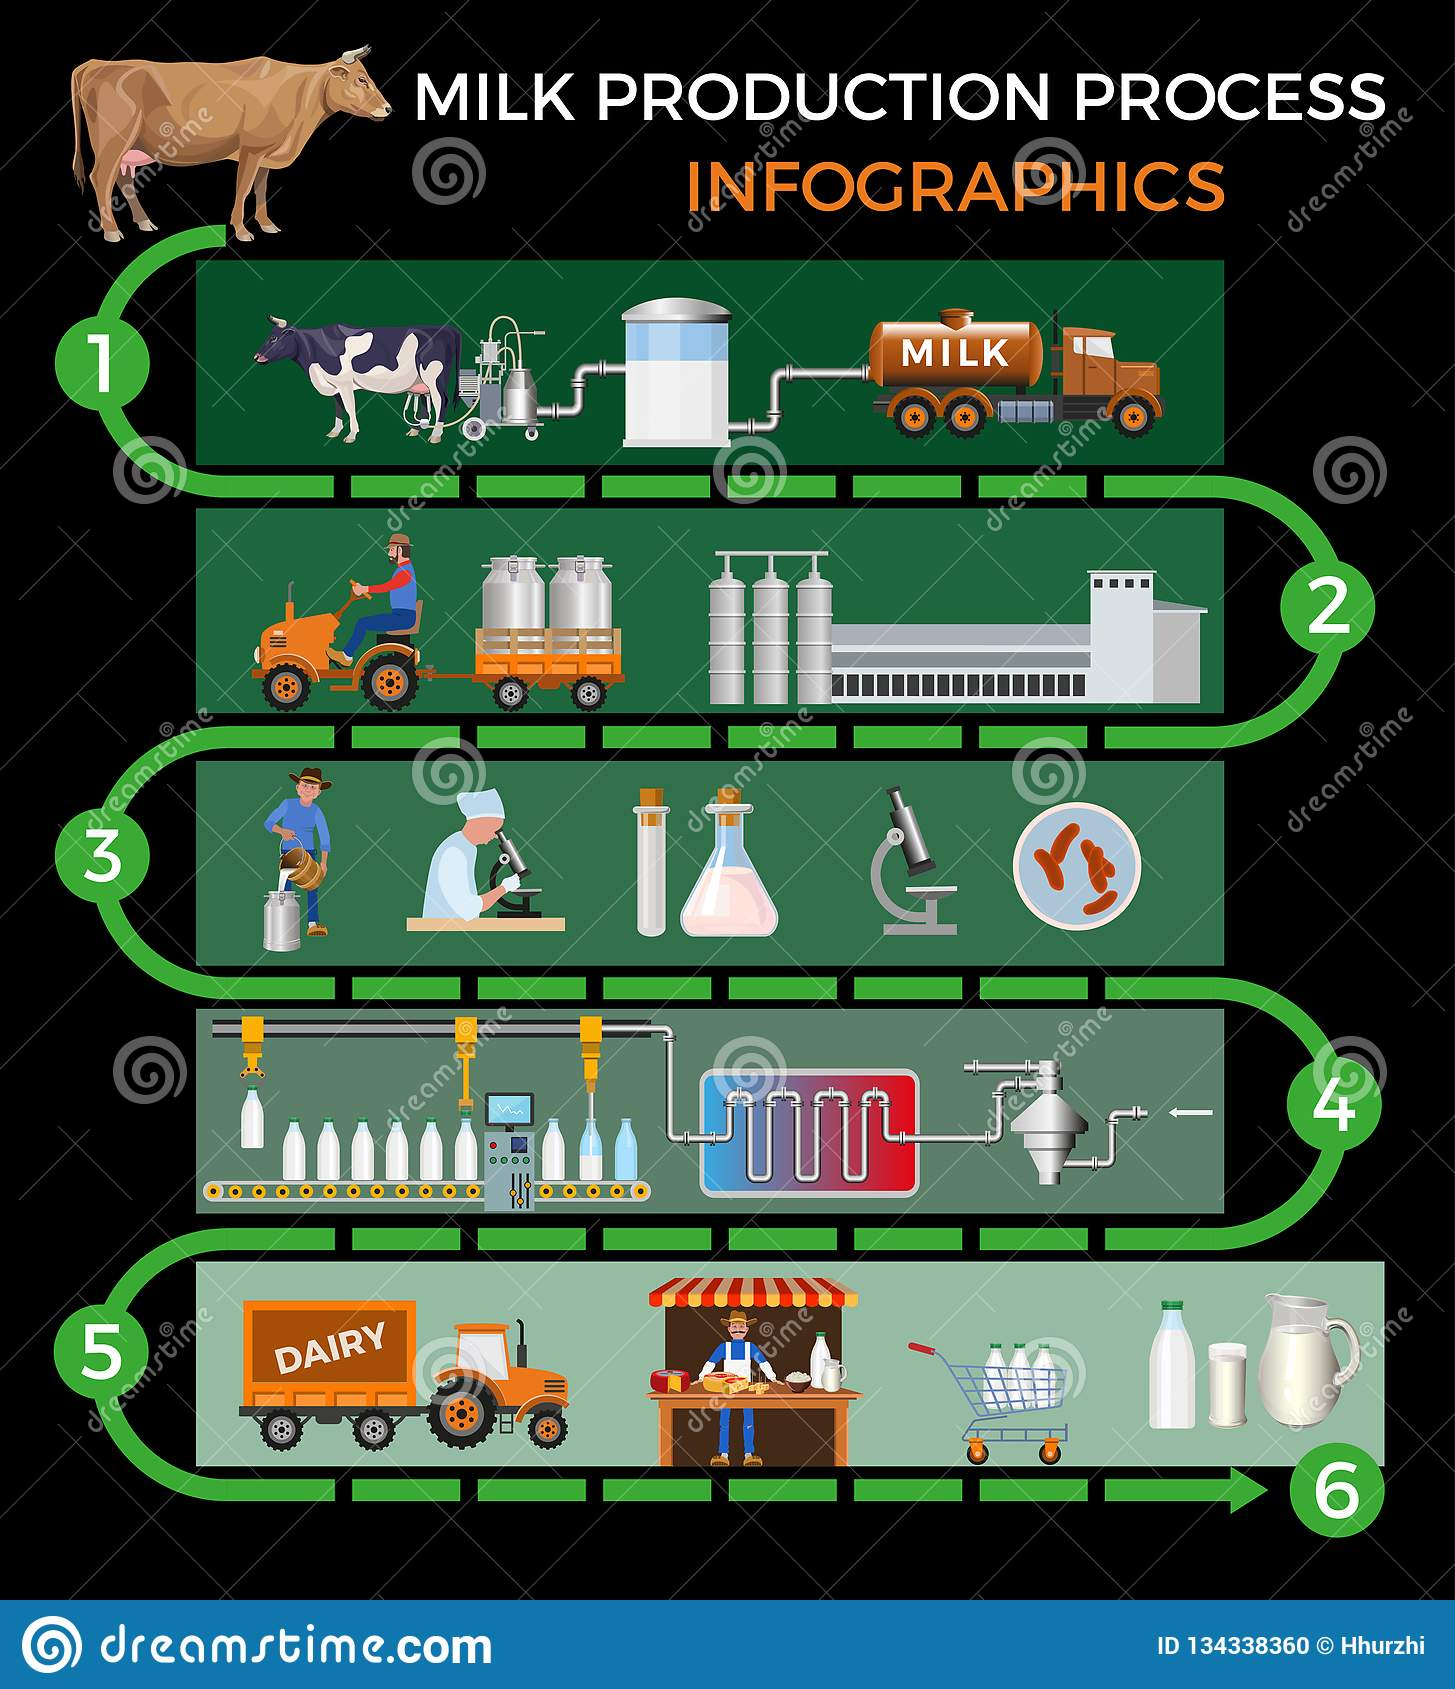 Milk production process